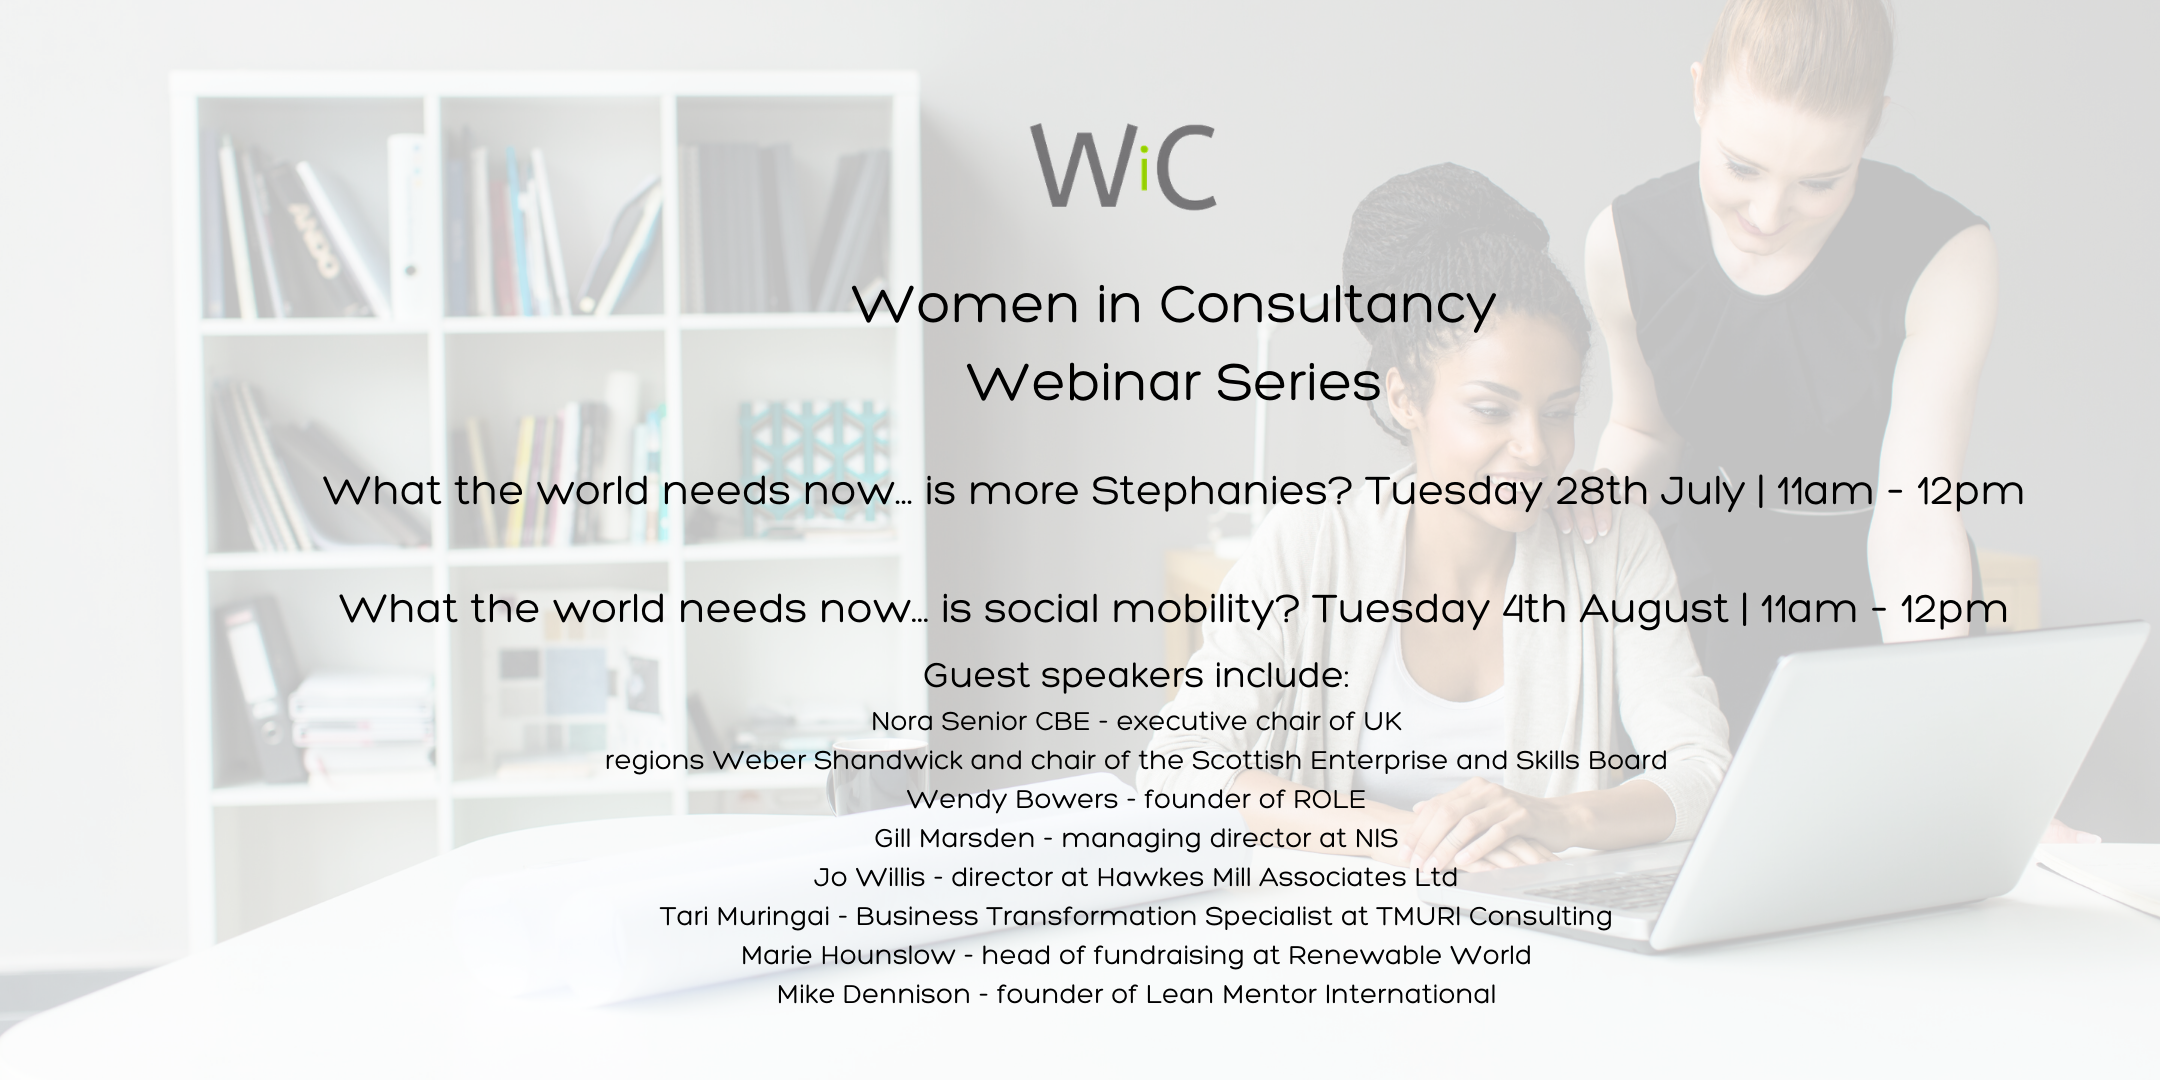 Women in Consultancy are hosting a series of webinars about equality and diversity in the workplace.